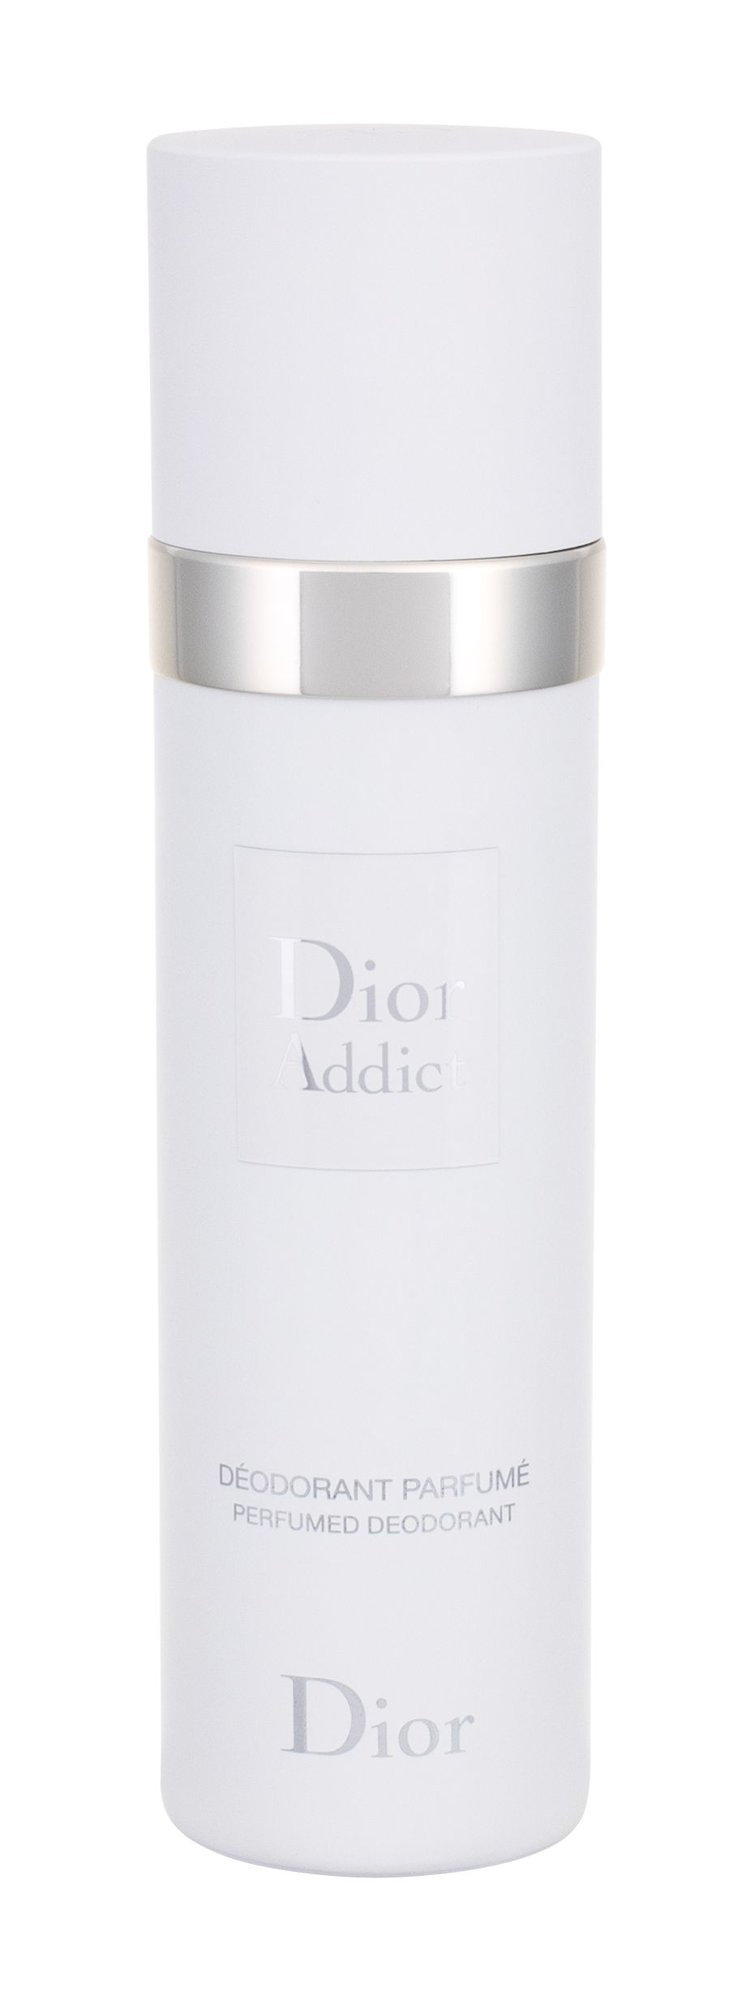 Christian Dior Addict Deodorant 100ml